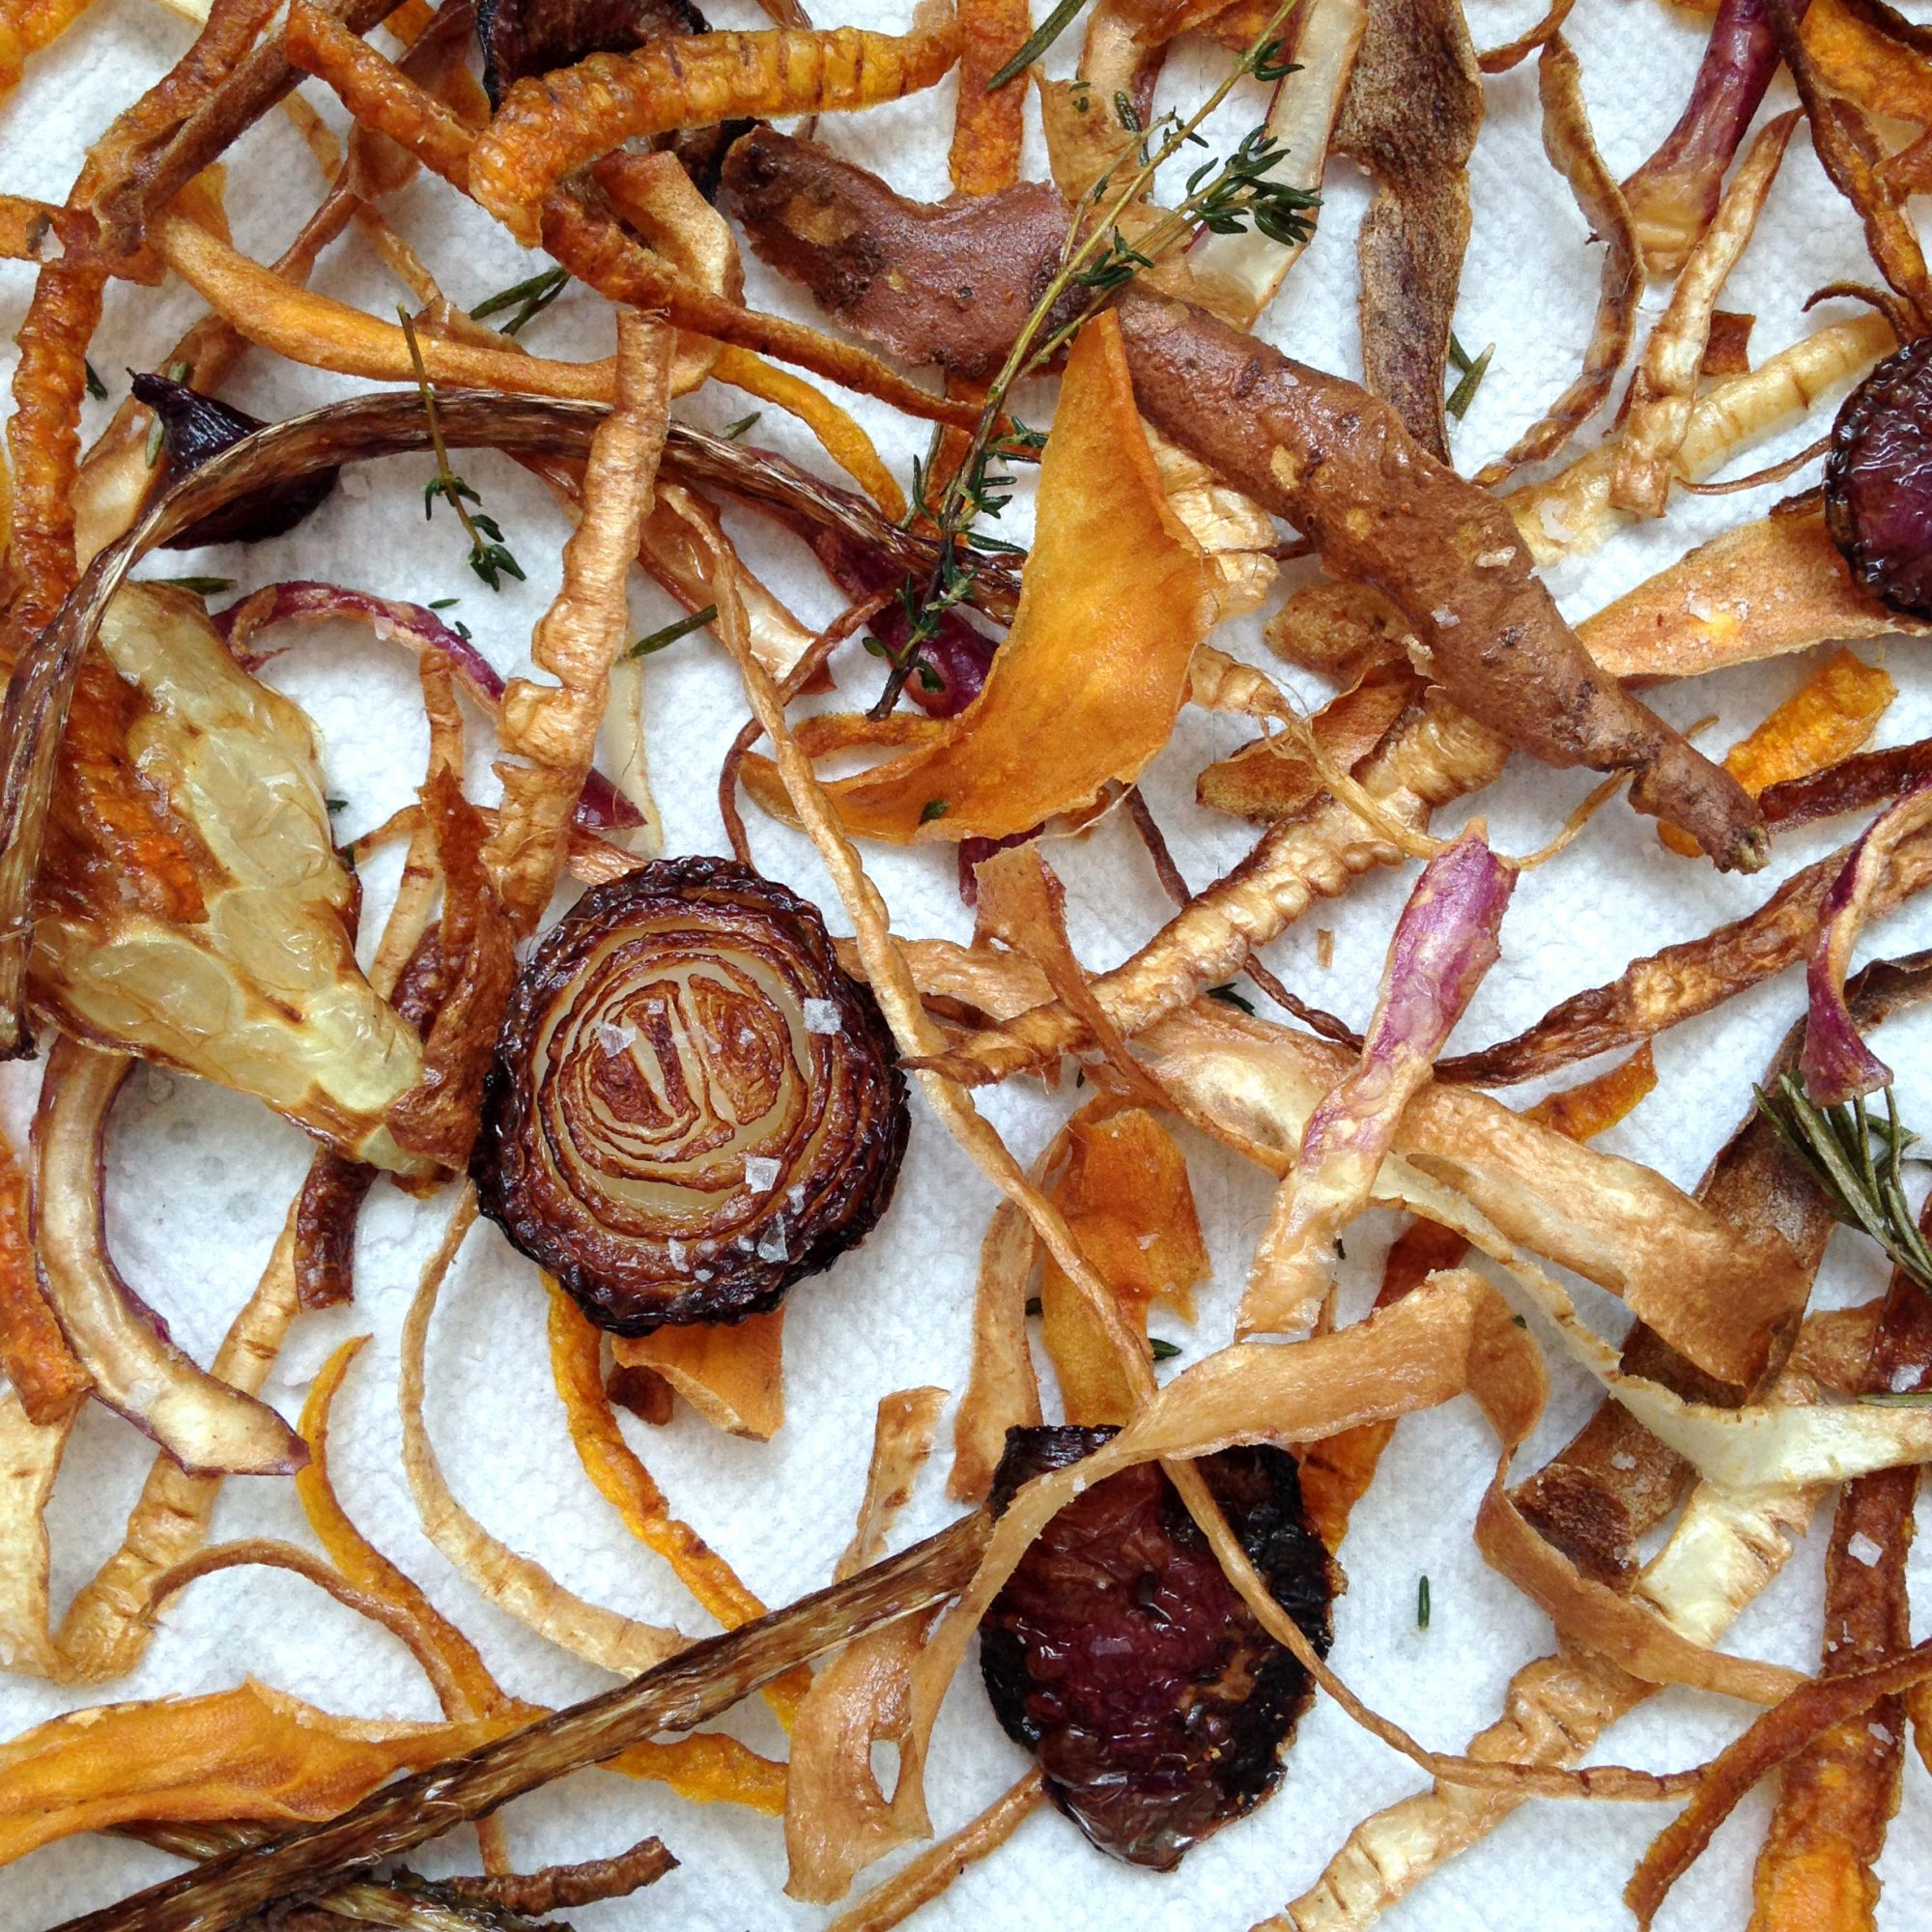 How to Make No-Waste Veggie Chips